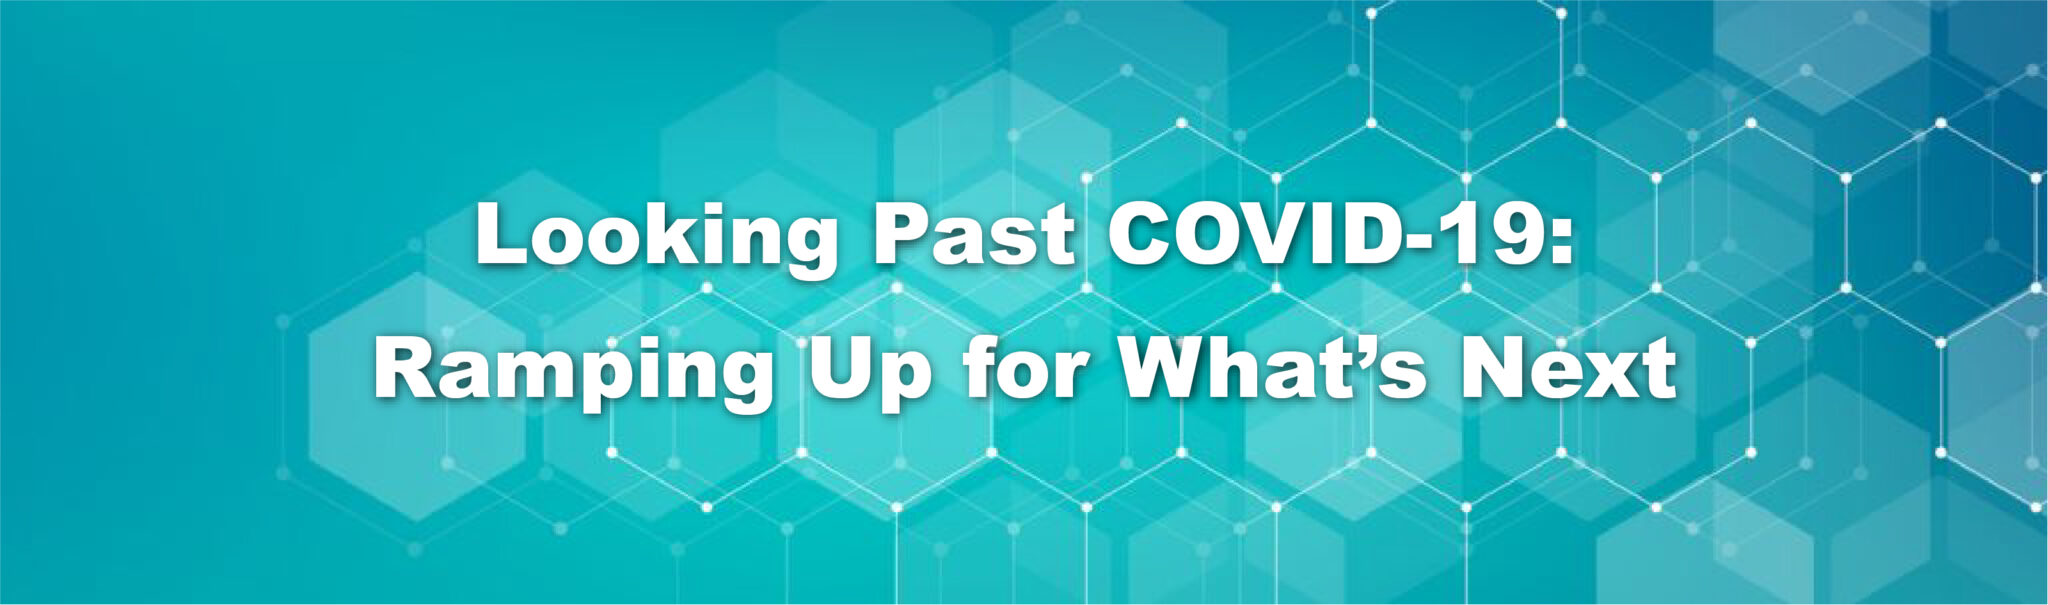 Looking Past COVID-19: Ramping Up for What's Next